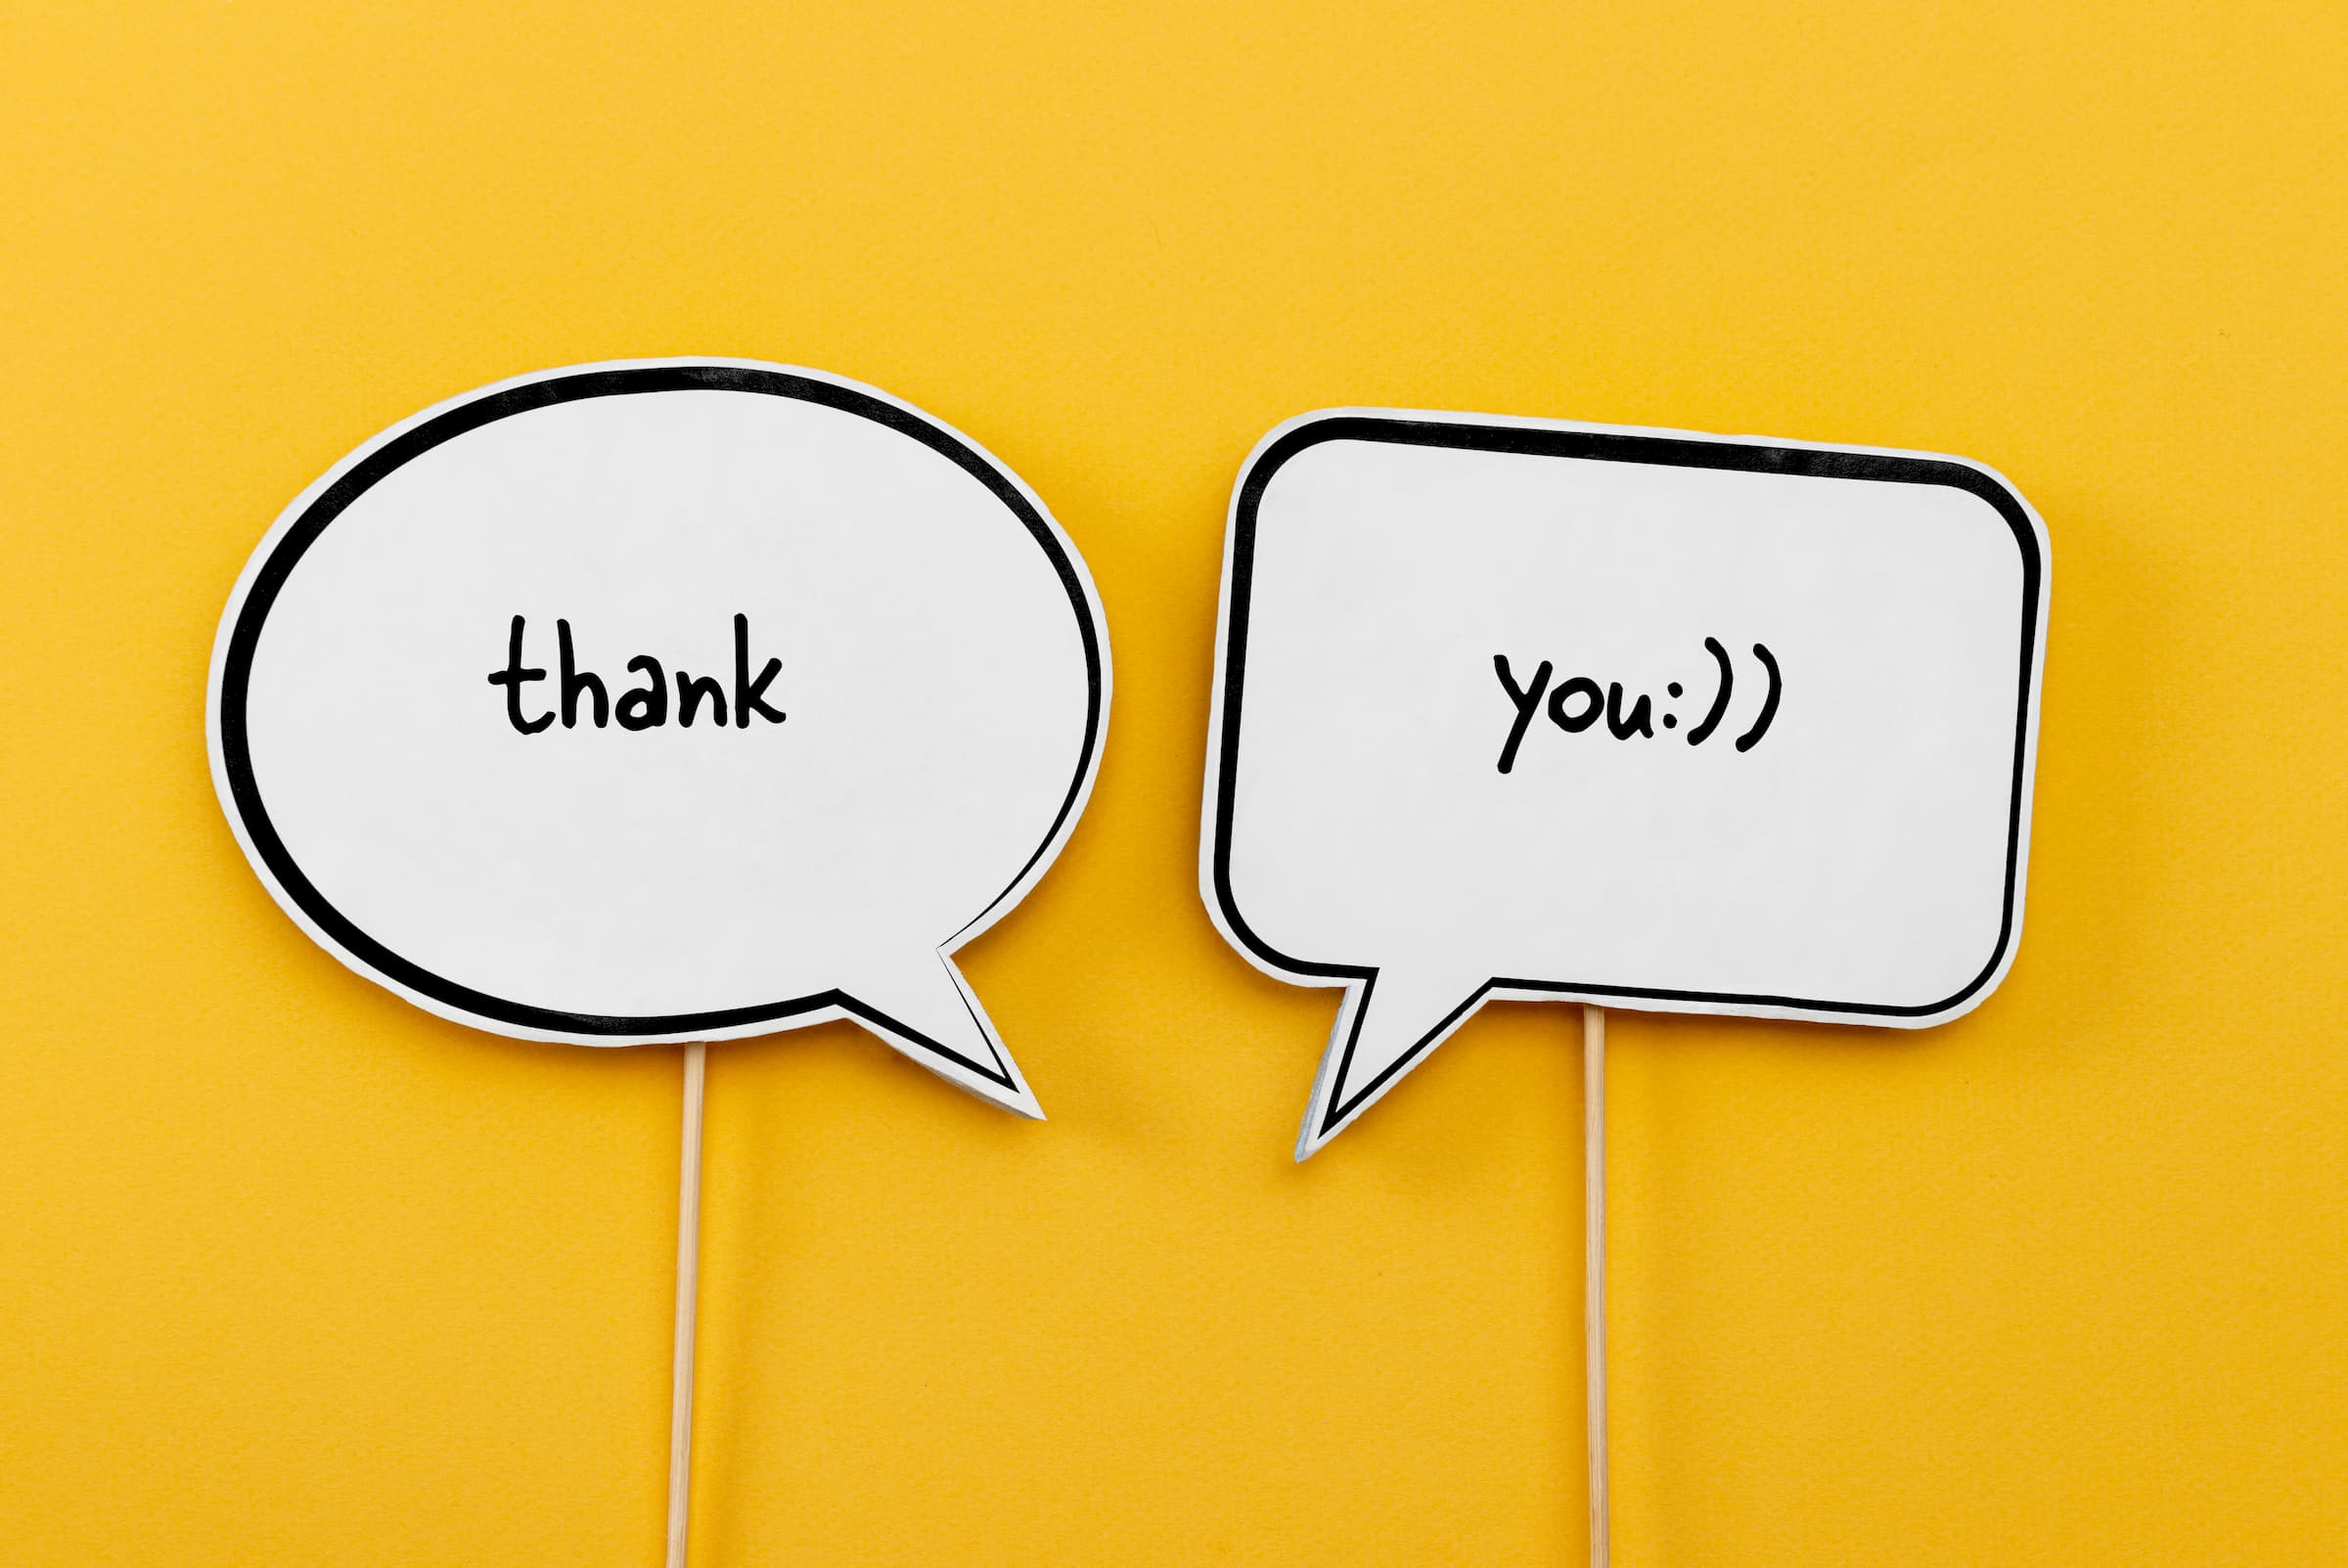 yellow back ground with speech bubble saying thank you